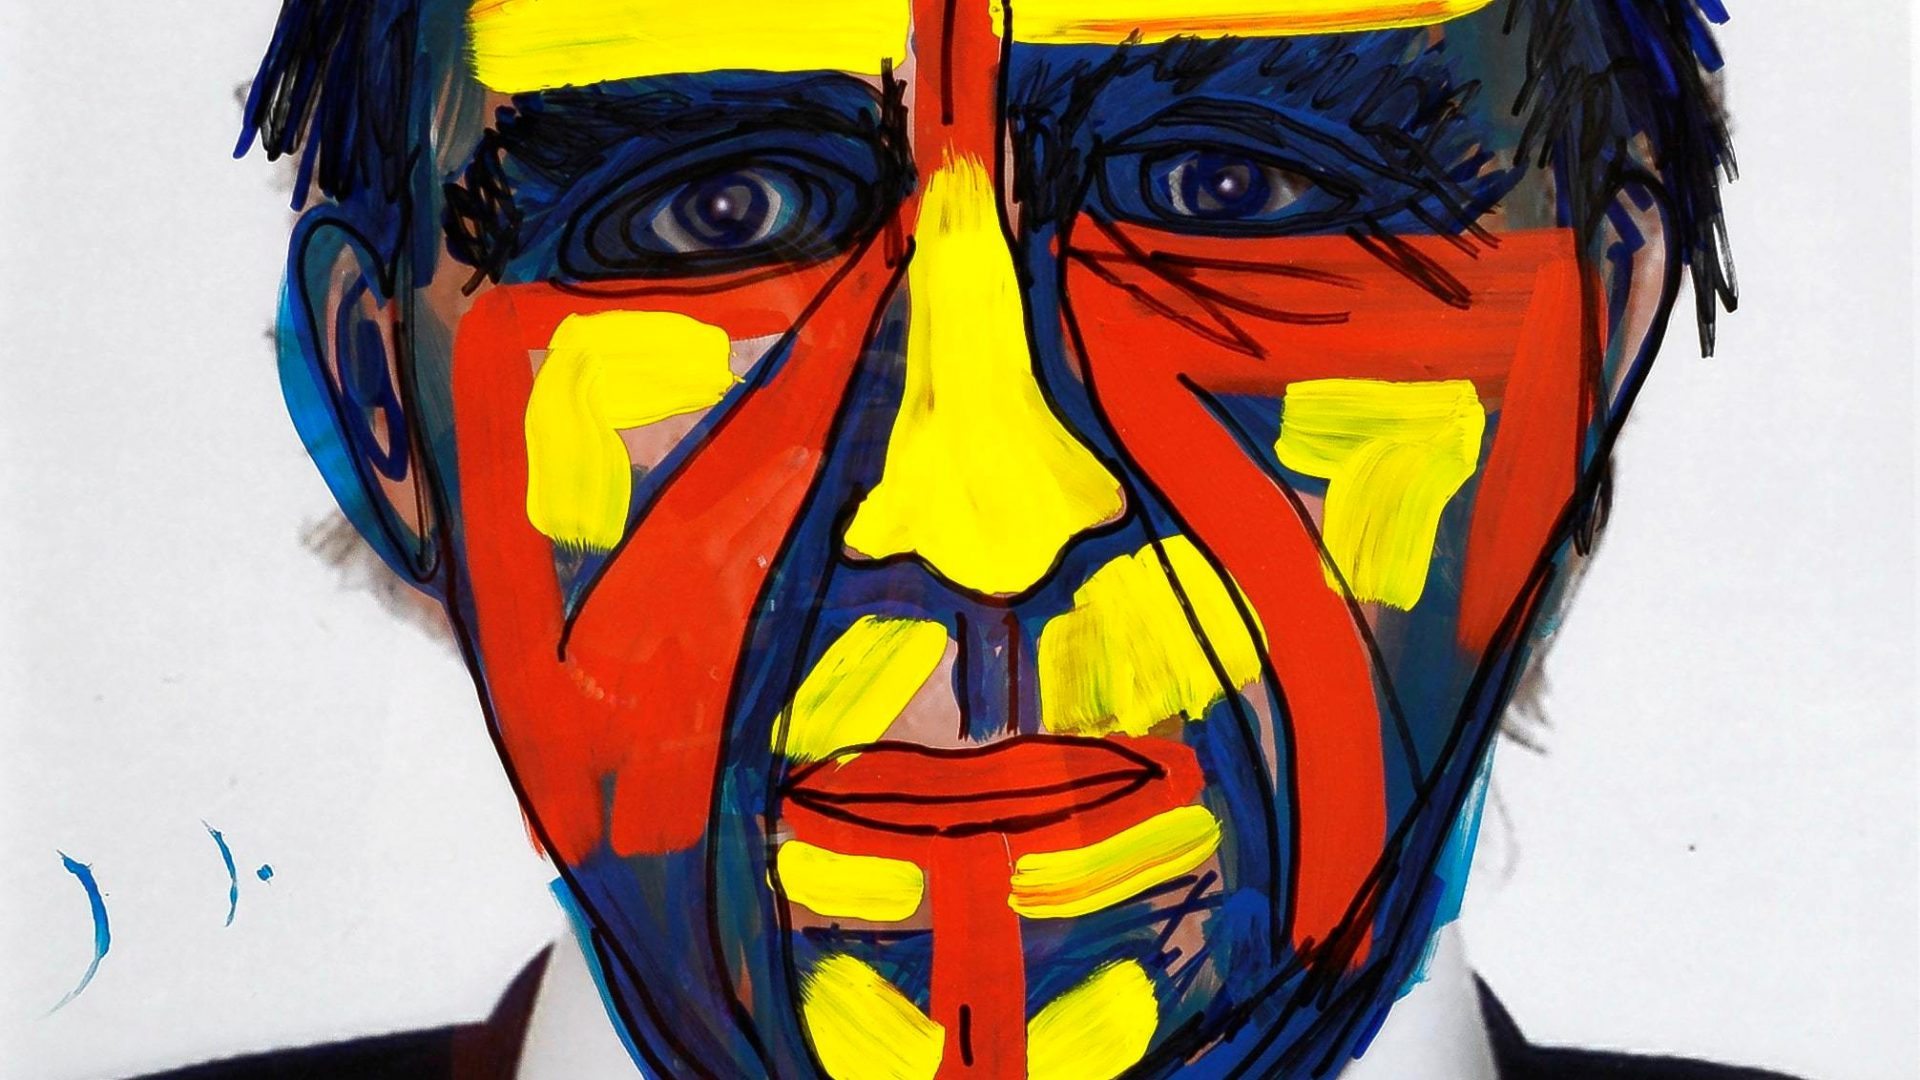 Jimmie Durham, Painted Self-Portrait, 2007, acrylic and sharpie on color photo, 83.5 x 61 cm, Courtesy Christine König Galerie, Vienna